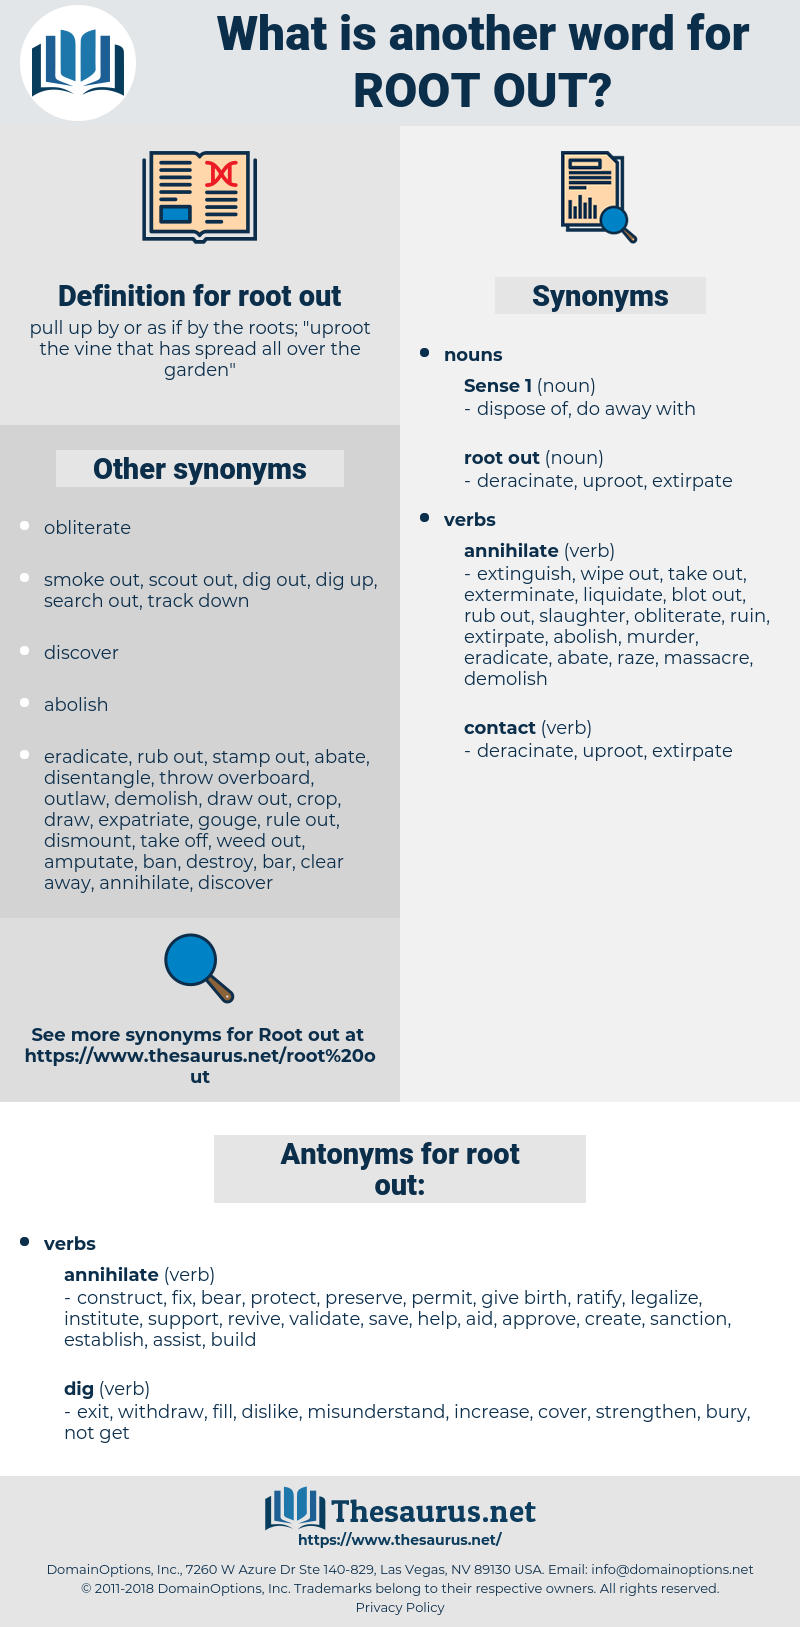 root out, synonym root out, another word for root out, words like root out, thesaurus root out